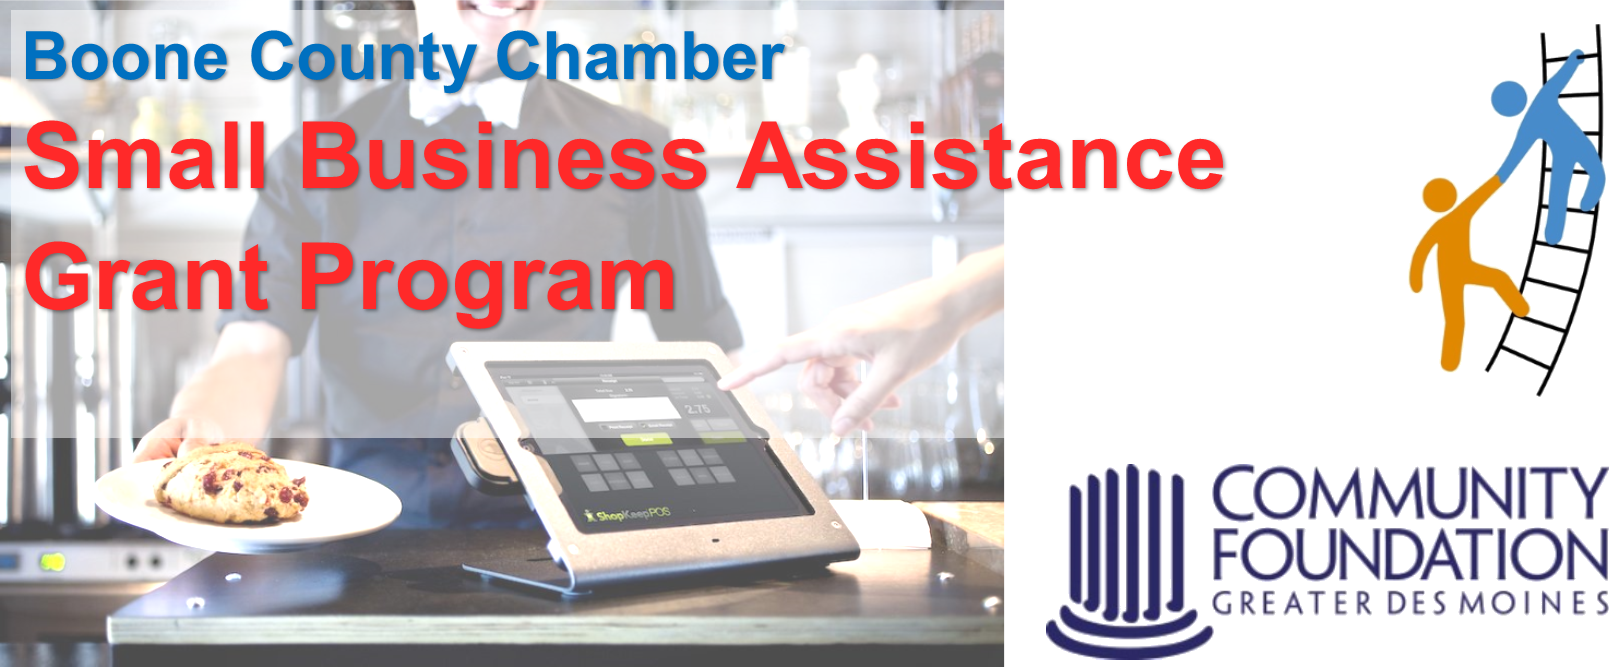 Chamber Small Business Assistance Grant